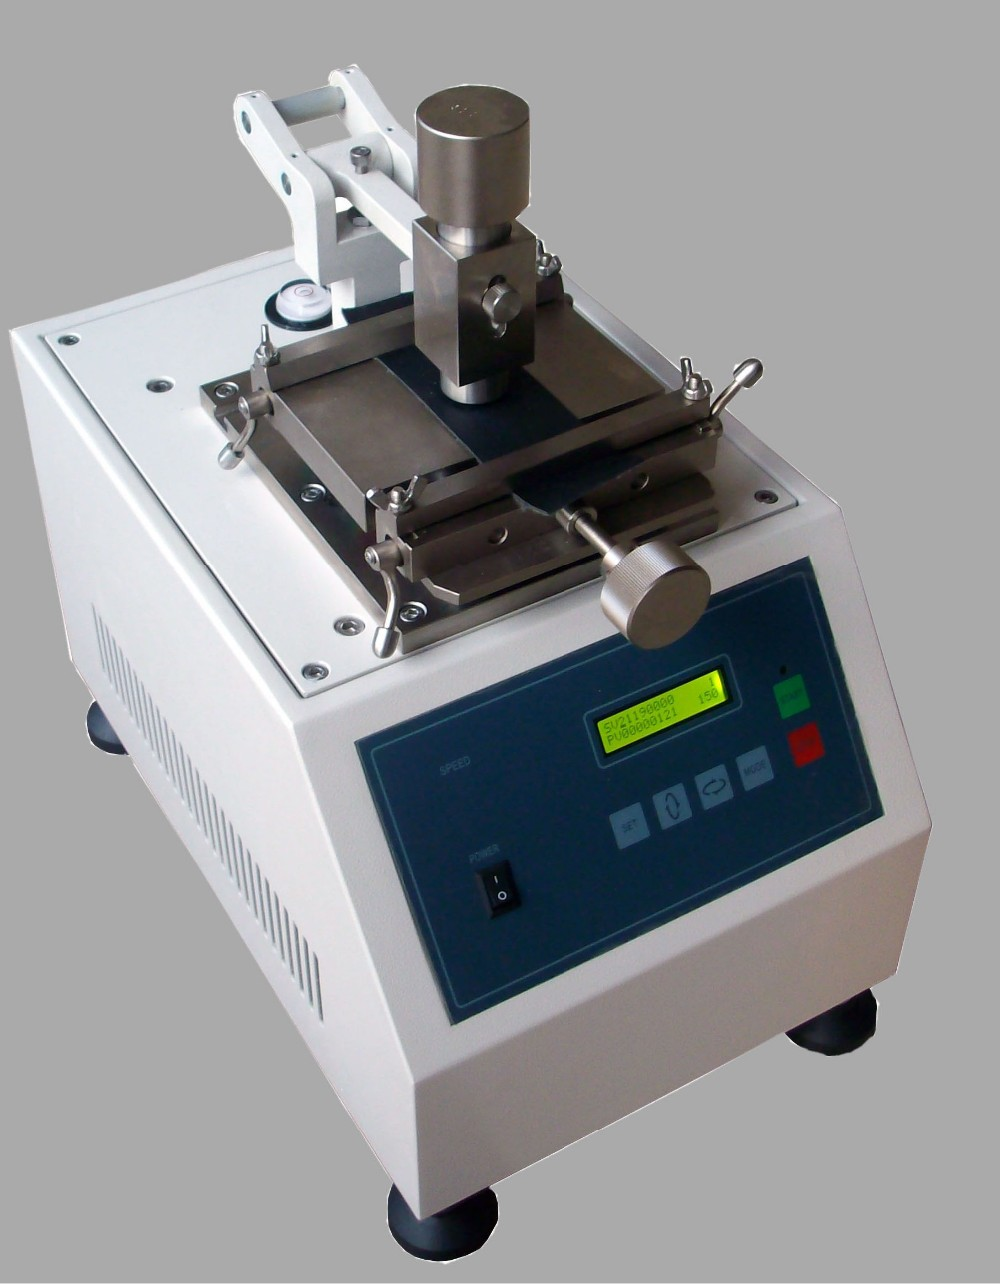 Iultcs Rub Test equipment for color fastness of leather and textile